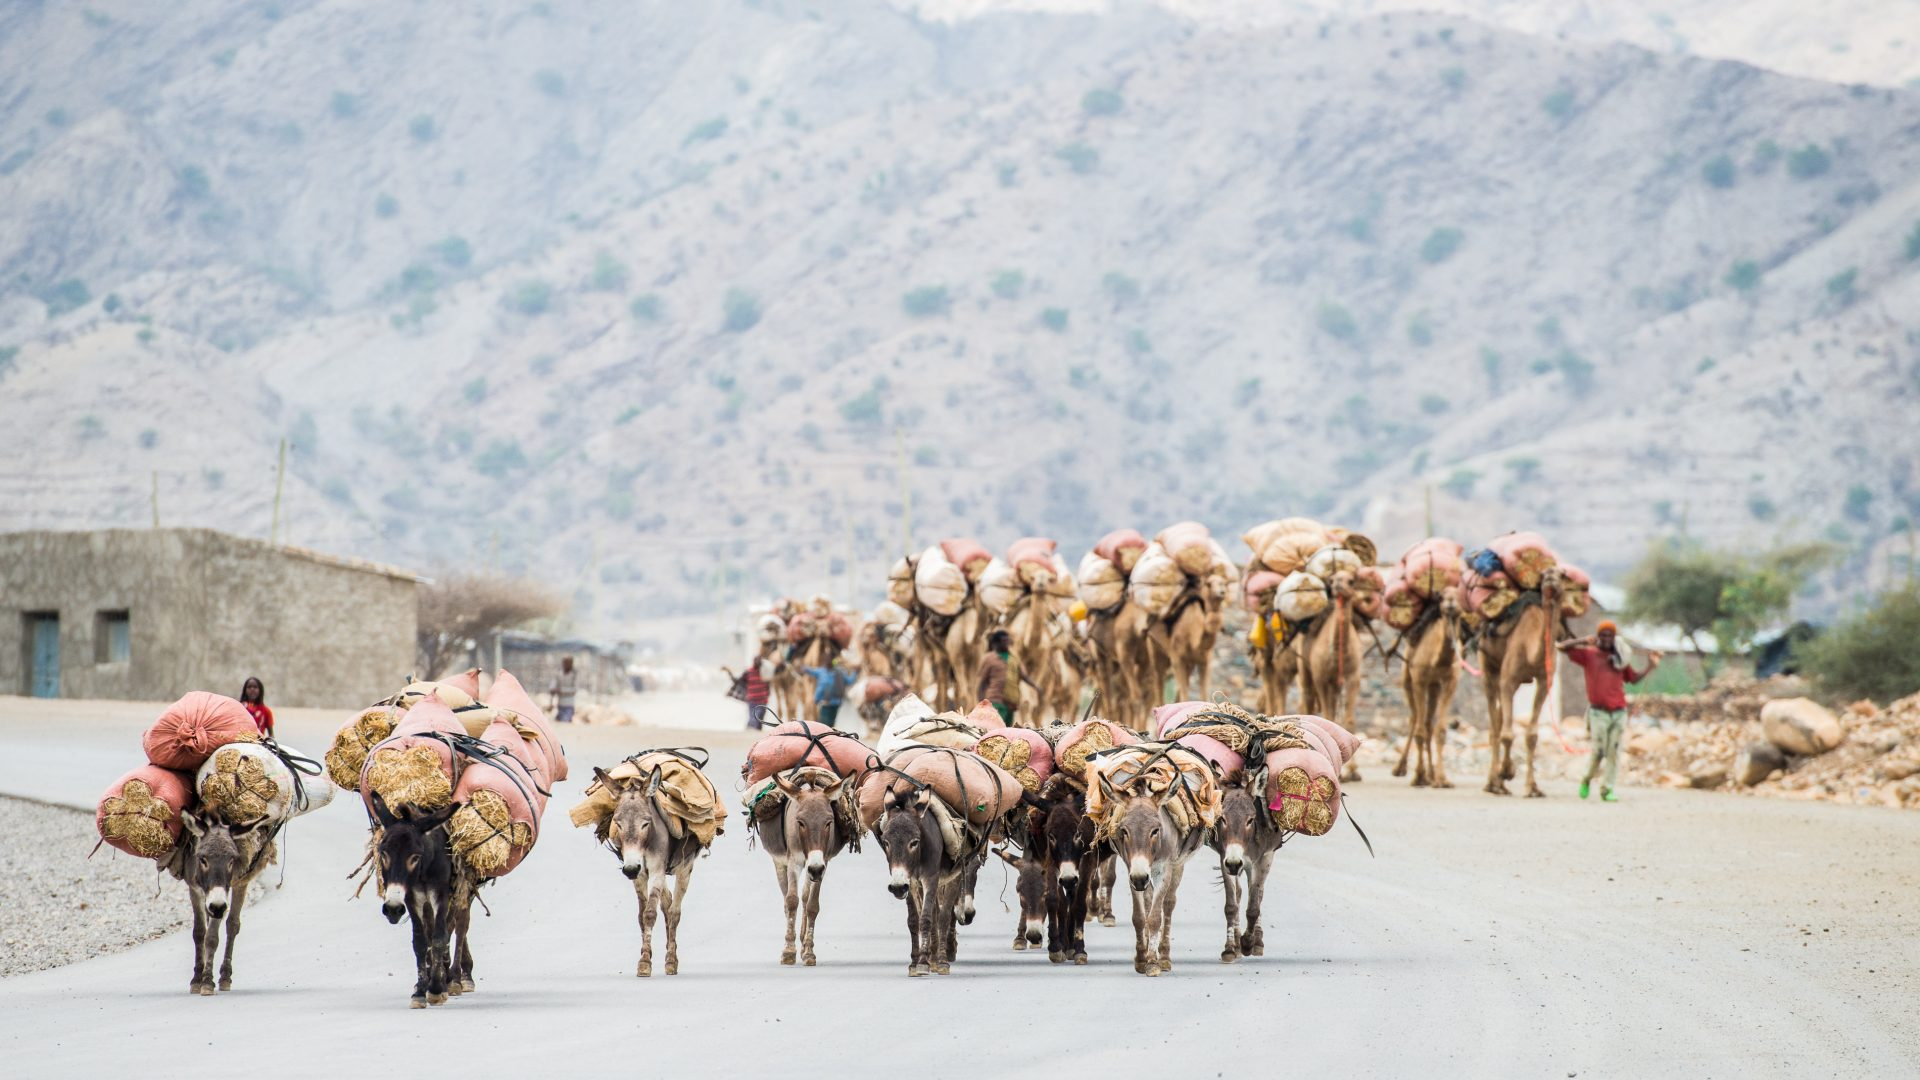 Camels and donkeys laden with salt make their way to market in the area of the Danakil Depression, Ethiopia.